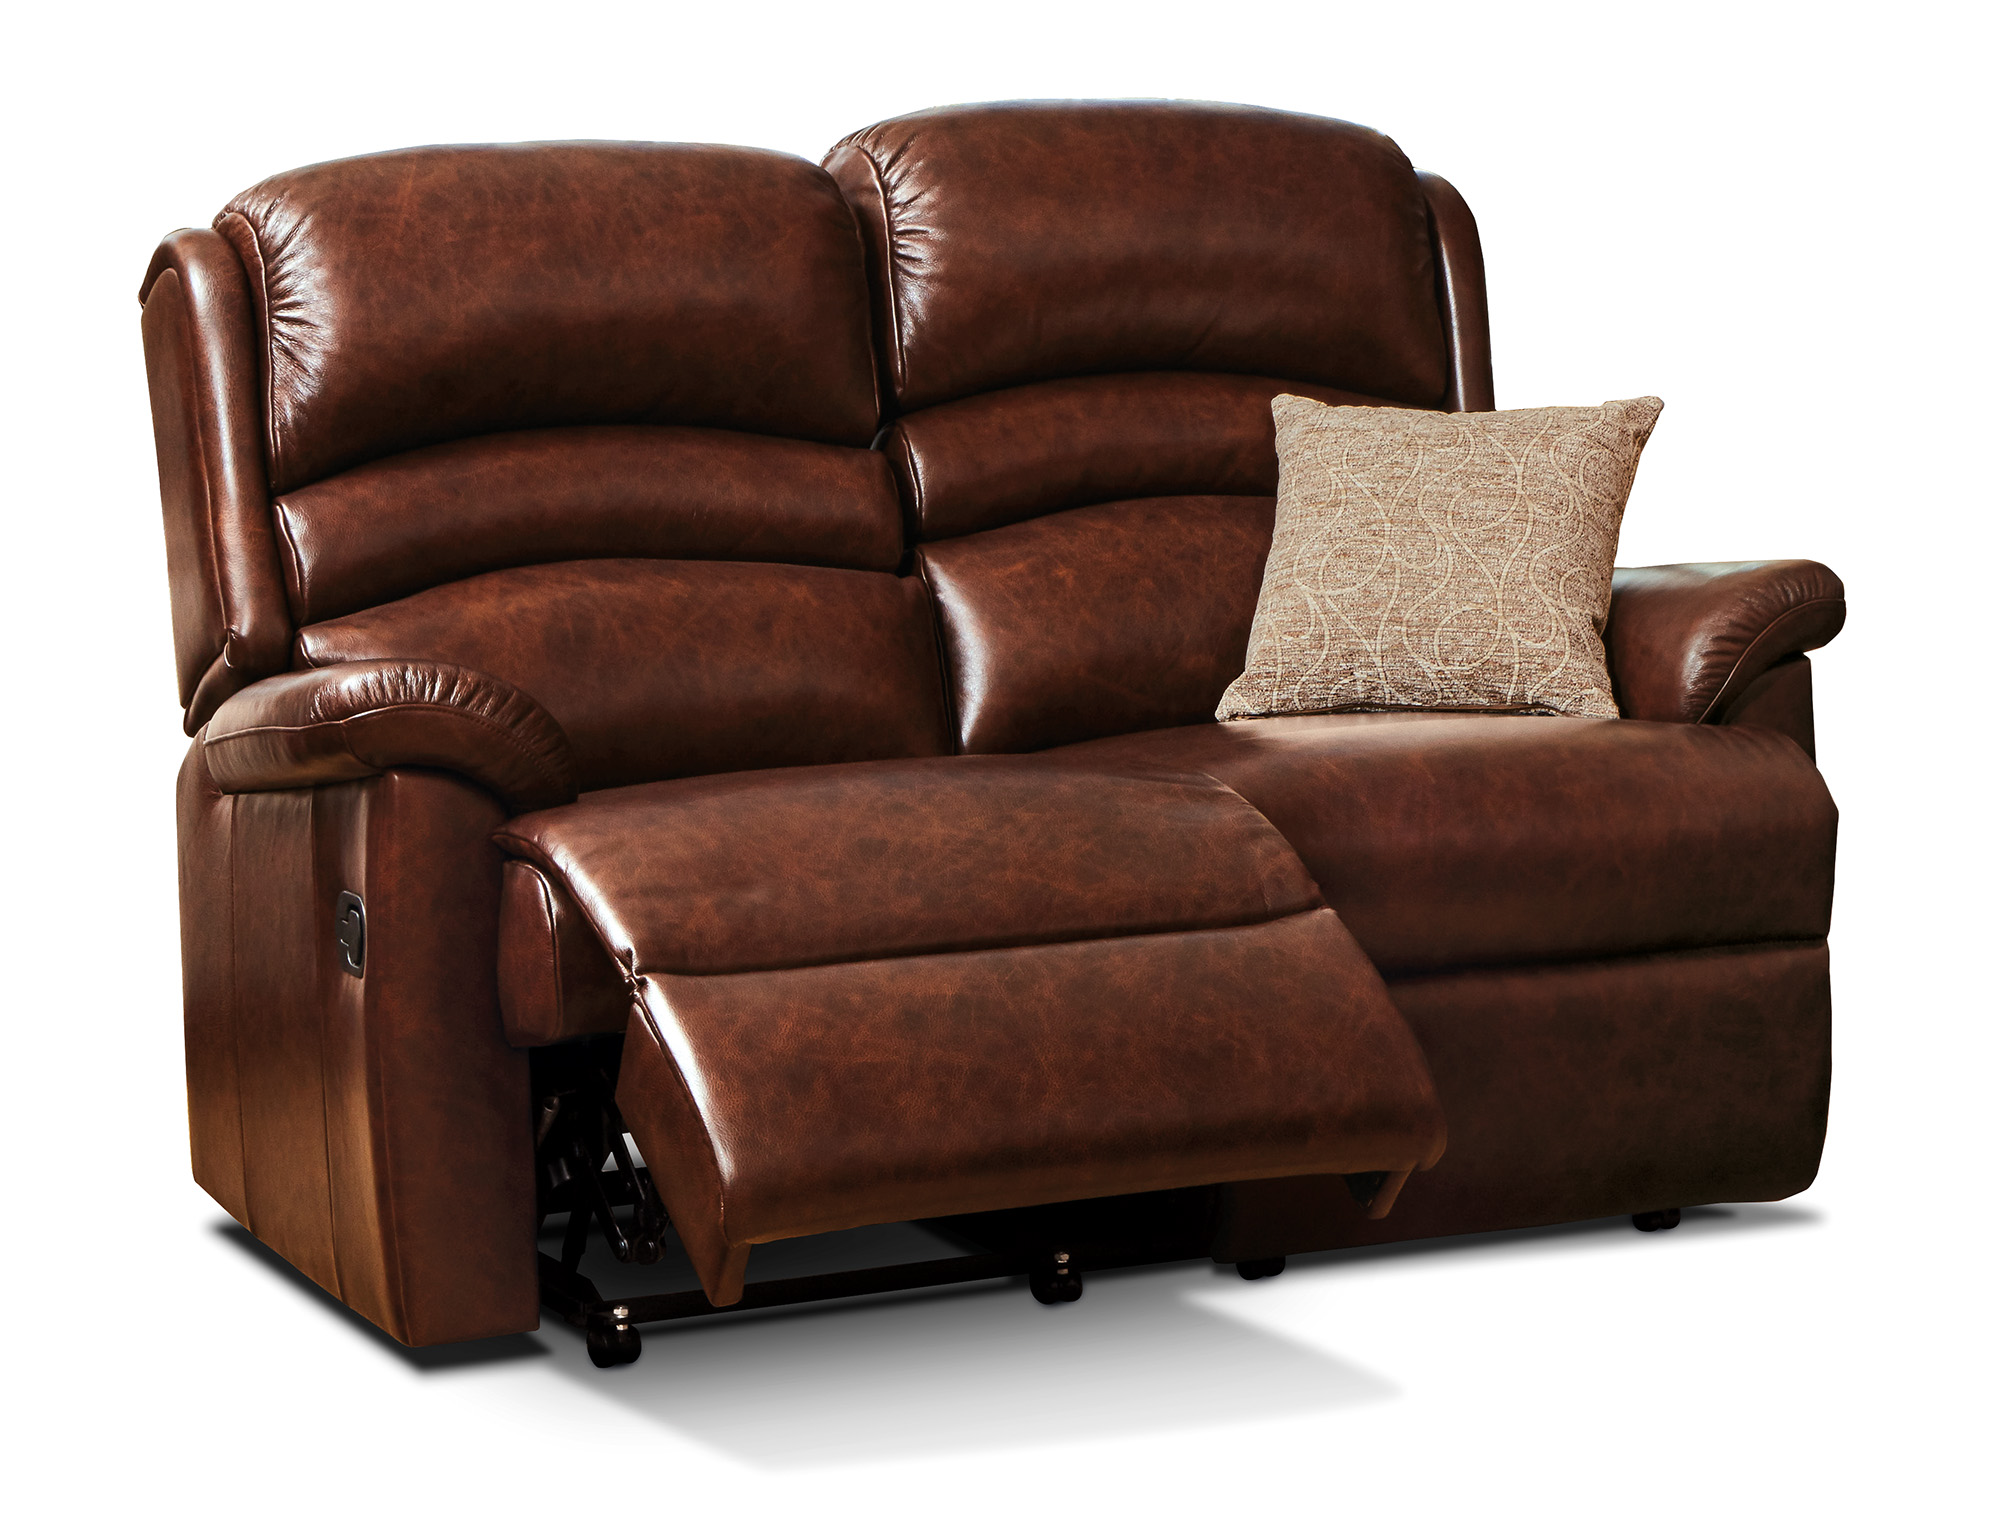 Olivia Standard Leather Reclining 2 Seater Settee